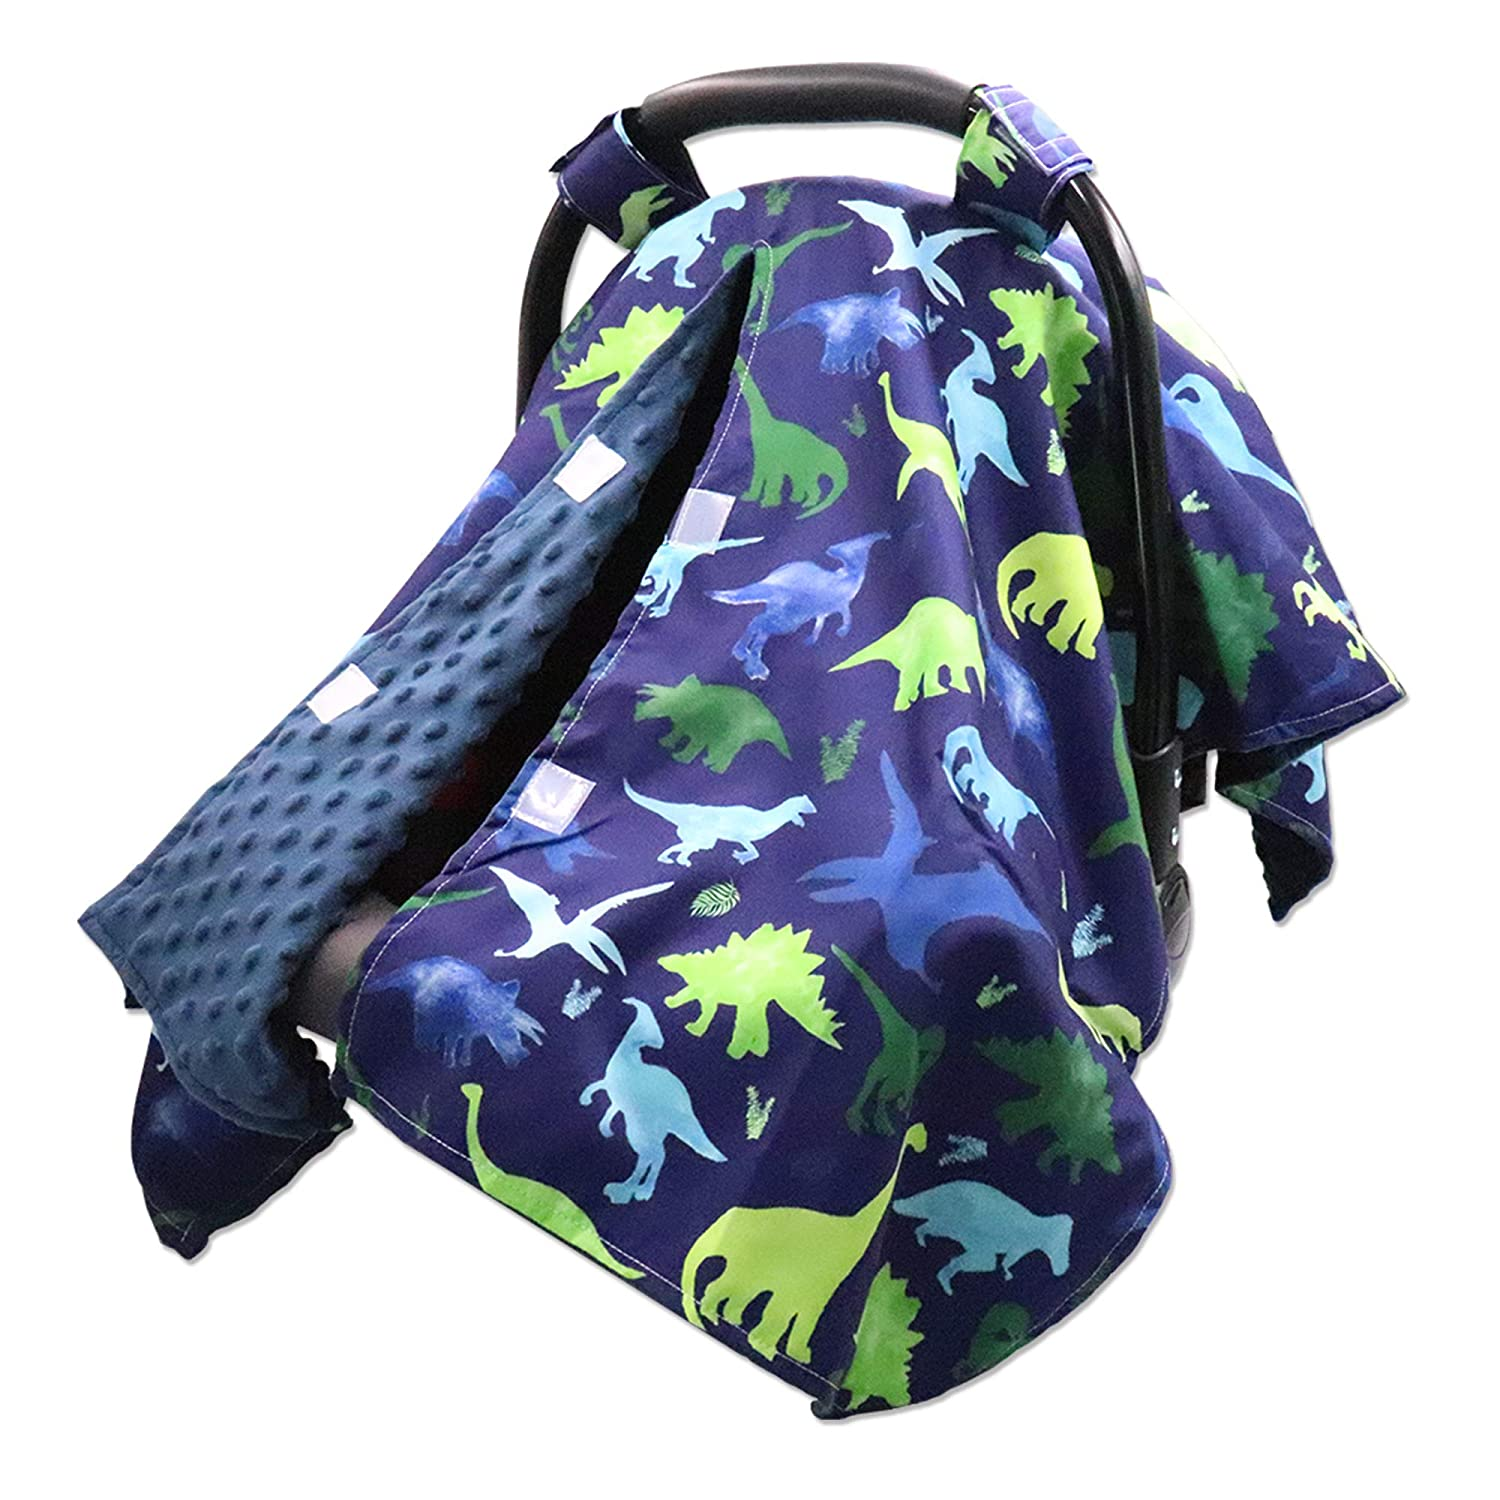 Peekaboo Opening Carseat Cover Outlet SALE Dinosaur Open Nursing Many popular brands Car